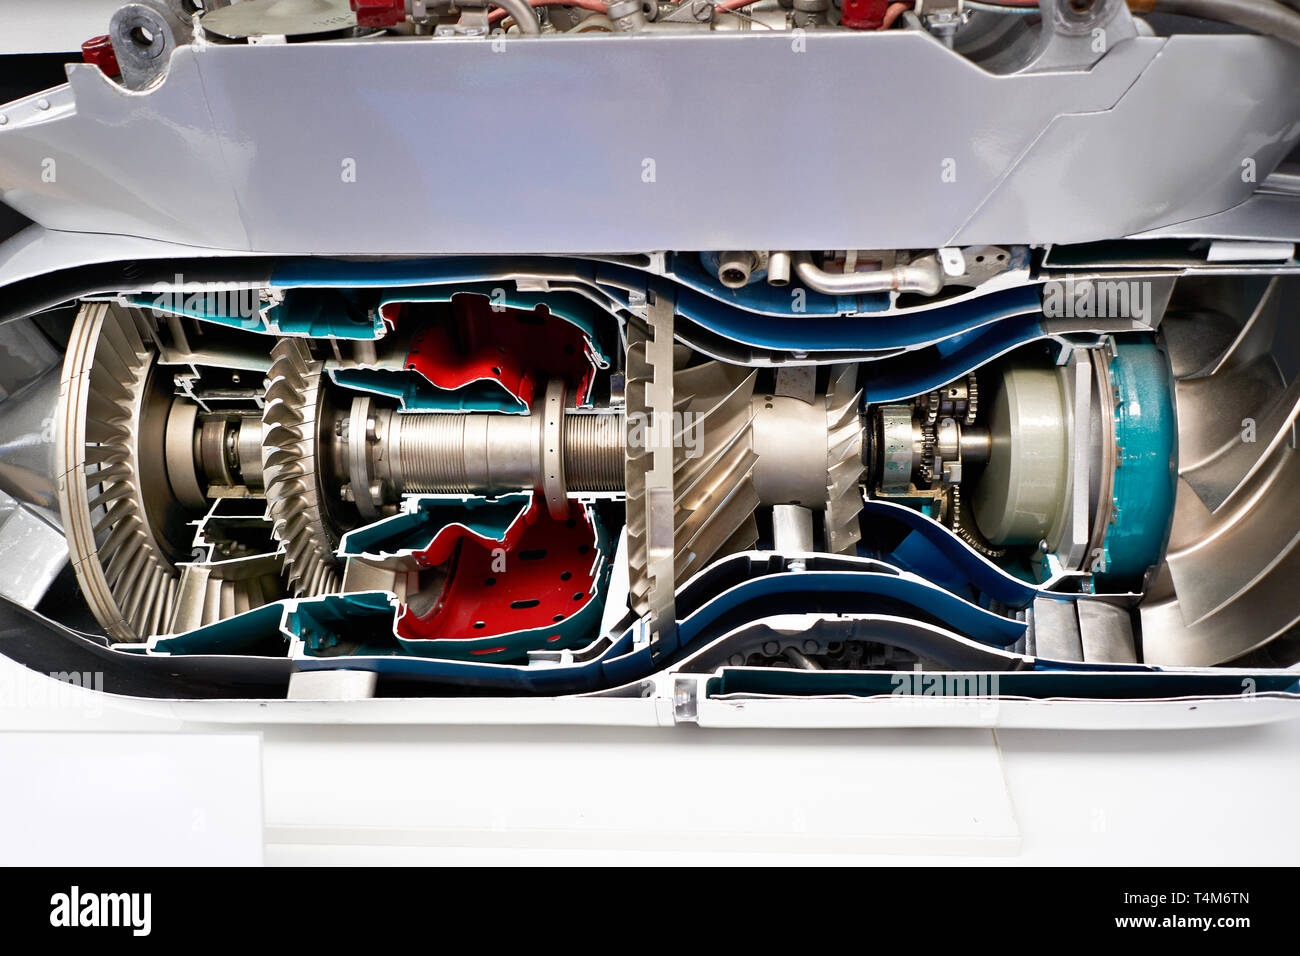 Two-circuit turbojet engine for aviation tactical missiles - Stock Image